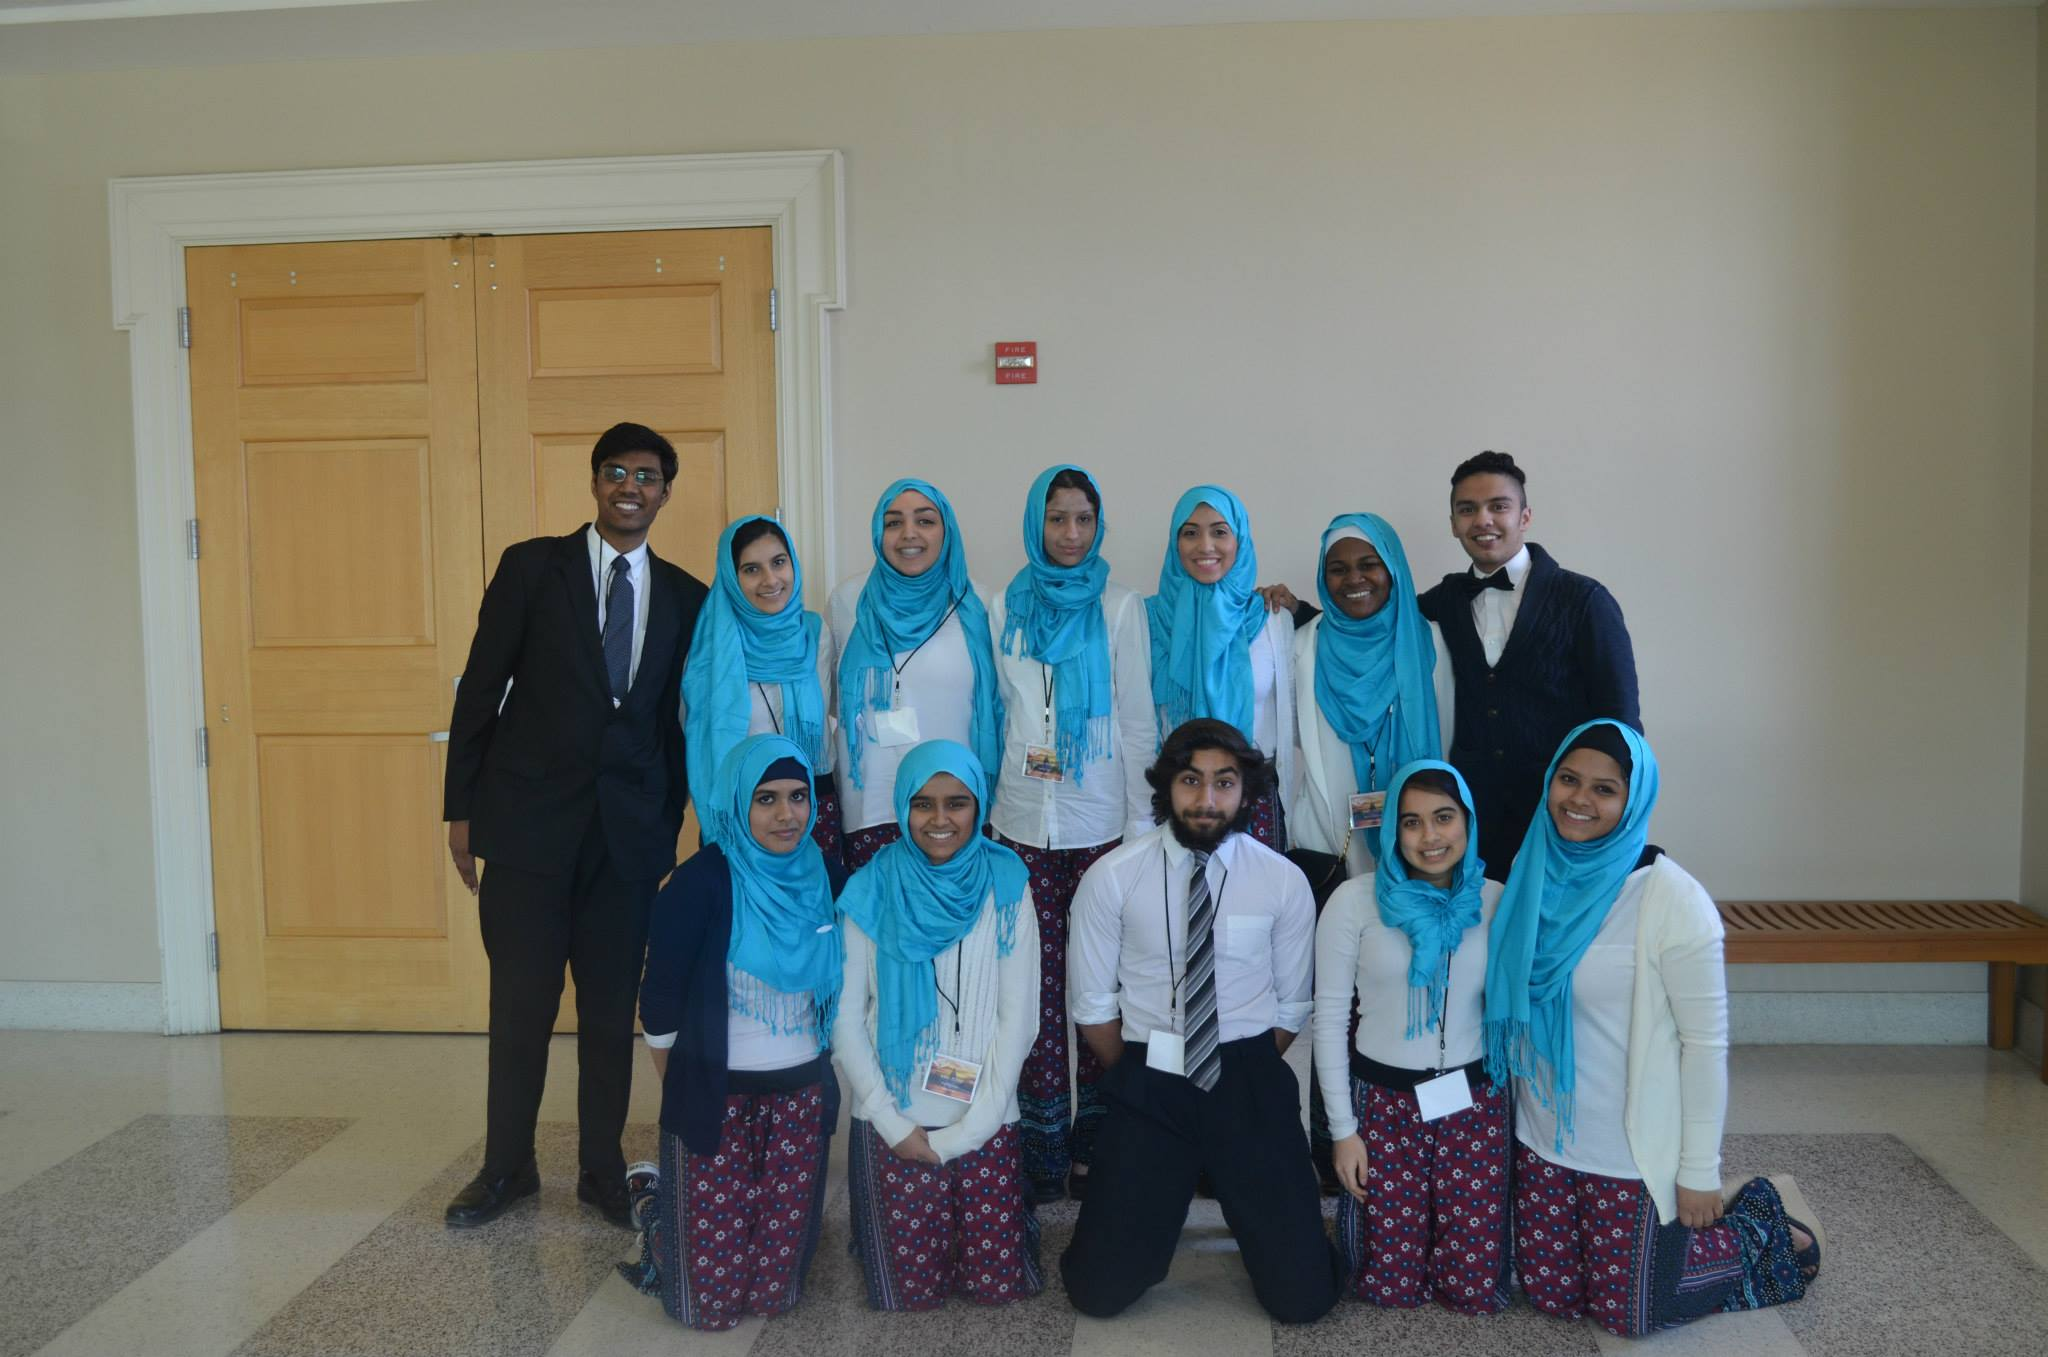 RM's Muslim students speak about recent events and their own experiences